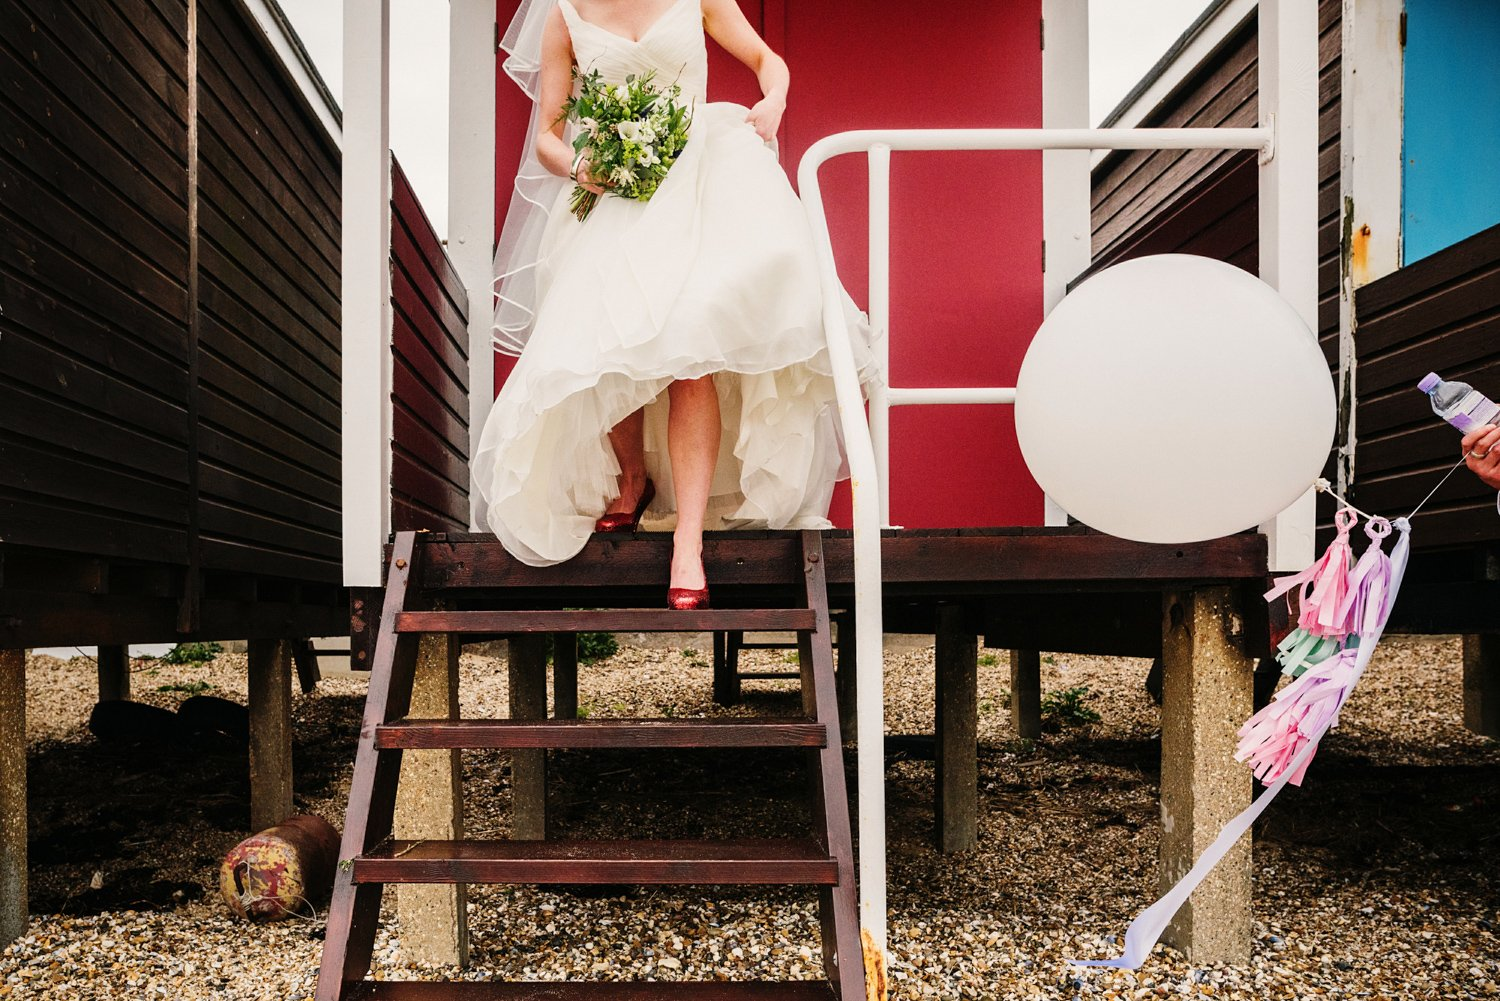 Award winning quirky wedding photography Bath